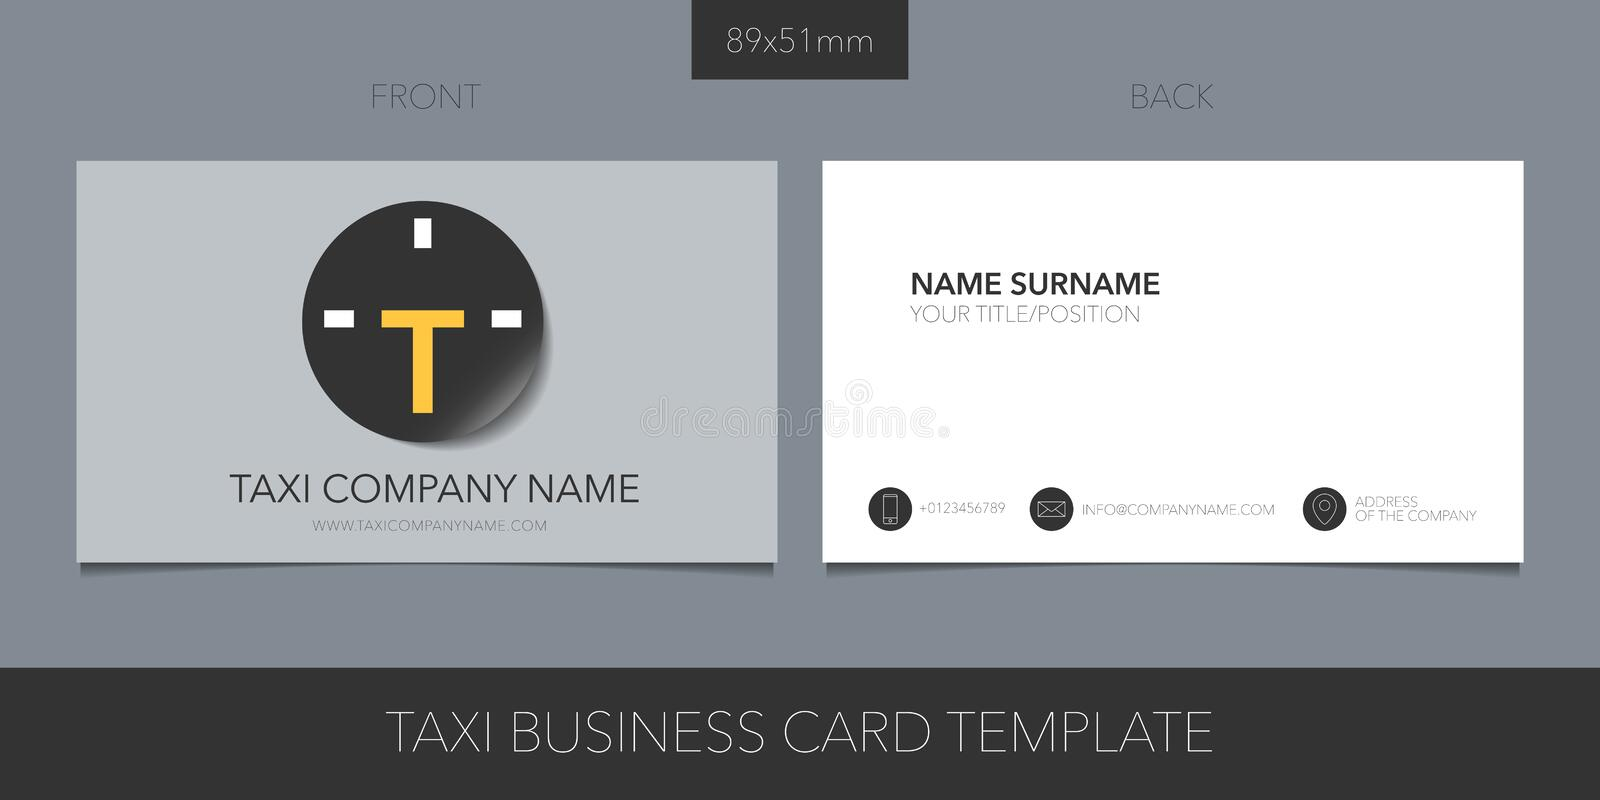 Taxi, cab vector business card with logo, icon and blank contact details, name royalty free illustration